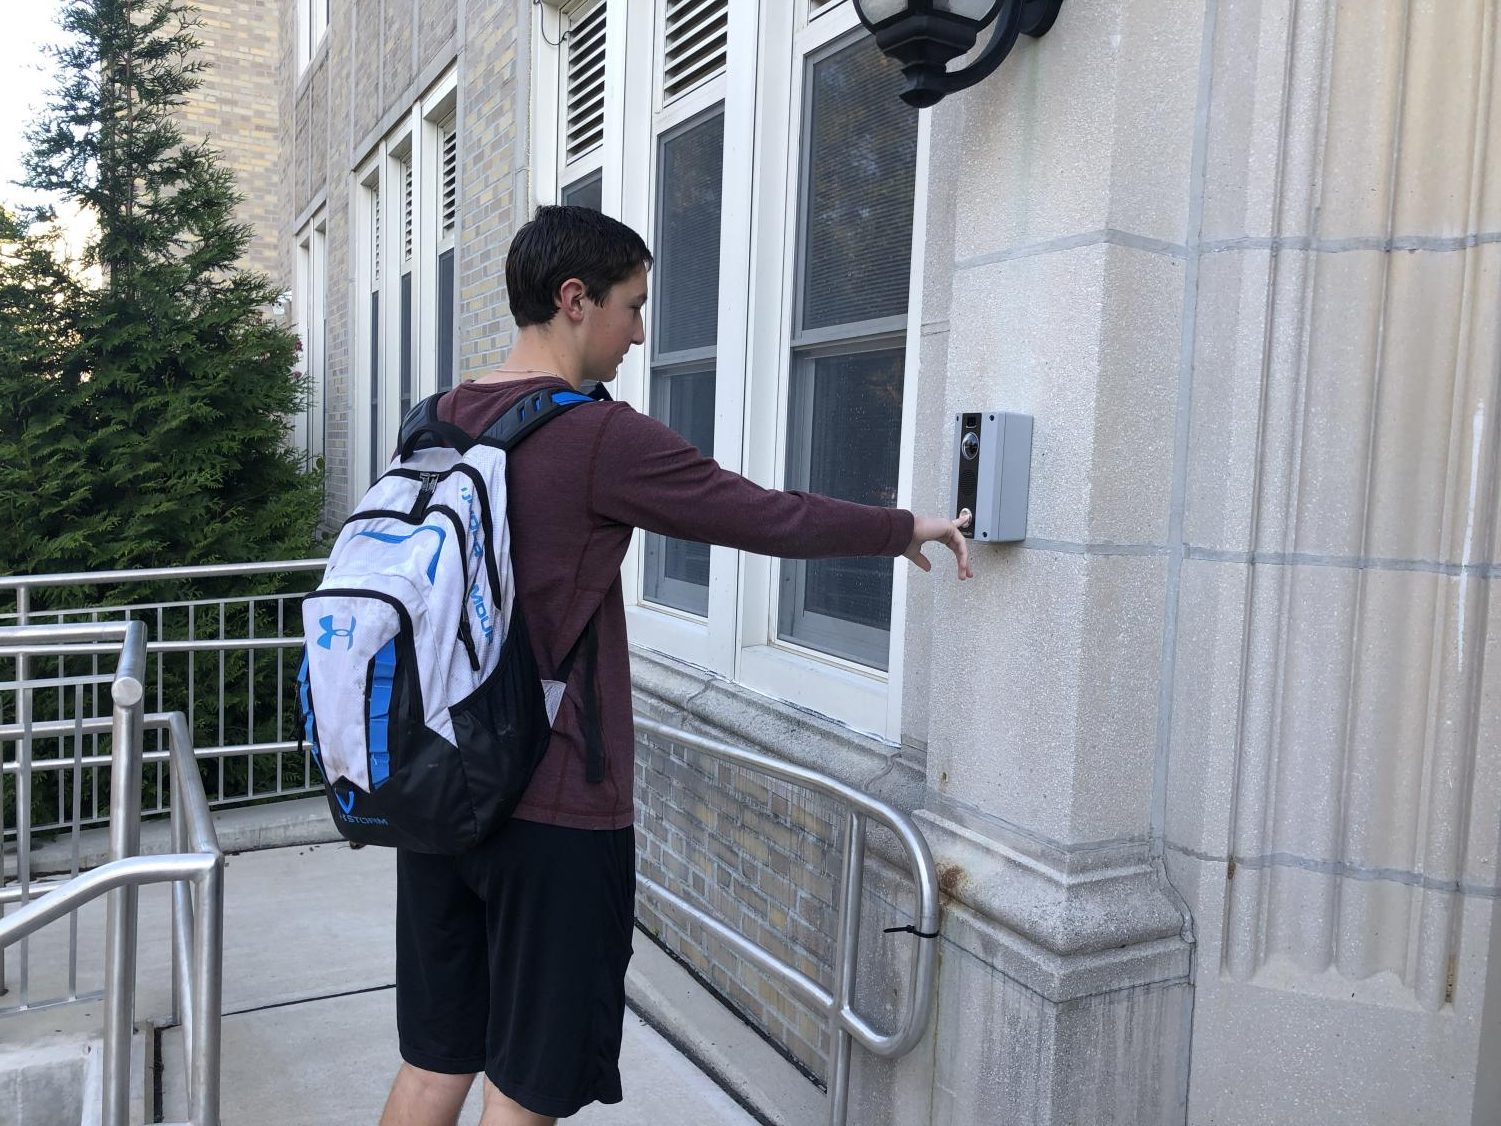 Student has to buzz into school after arriving late.